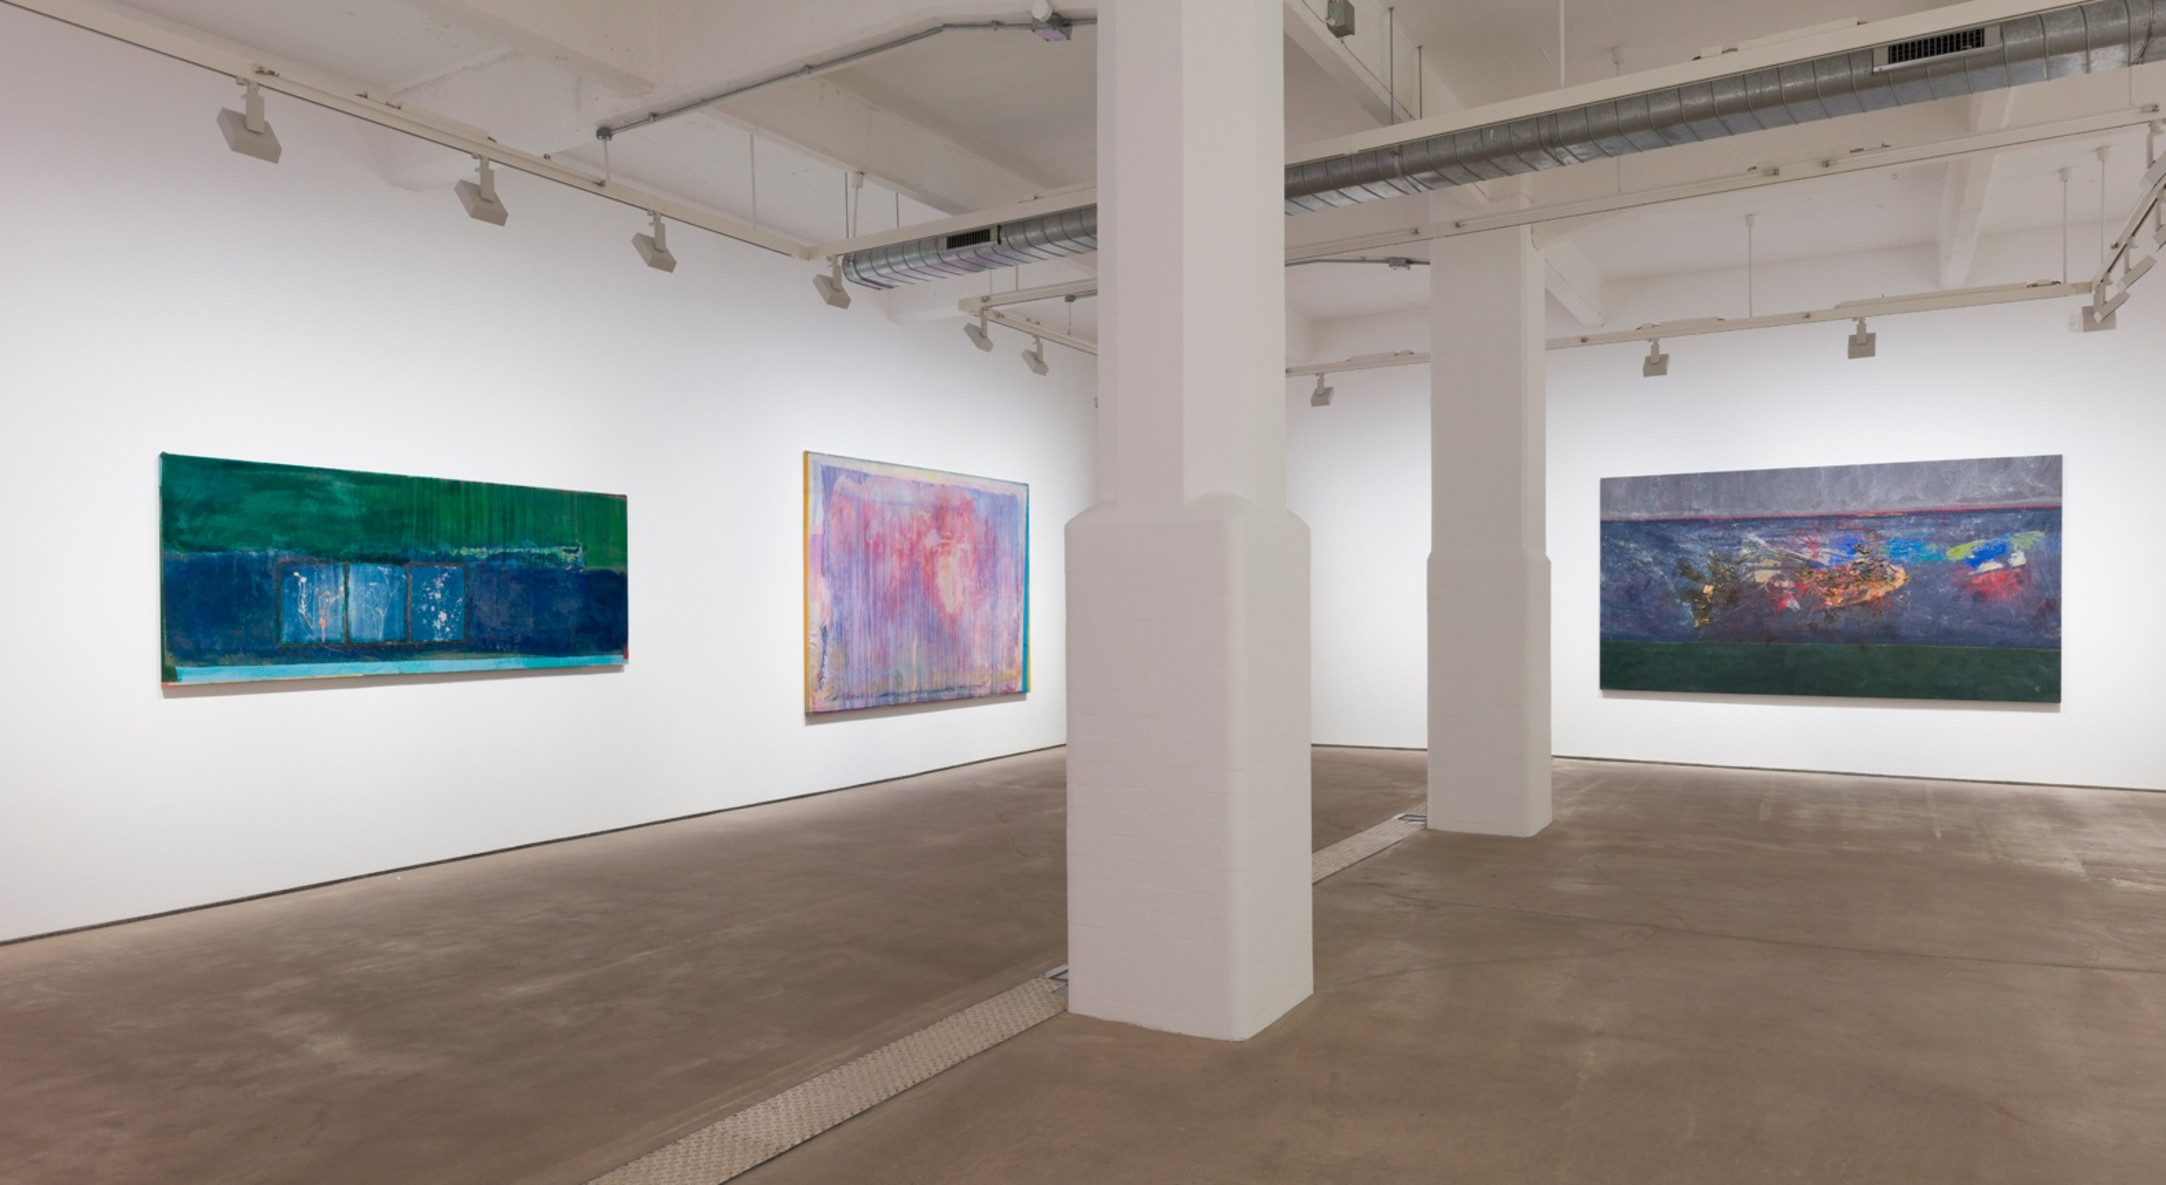 Installation view of Frank Bowling, More Land than Landscape at Hales London